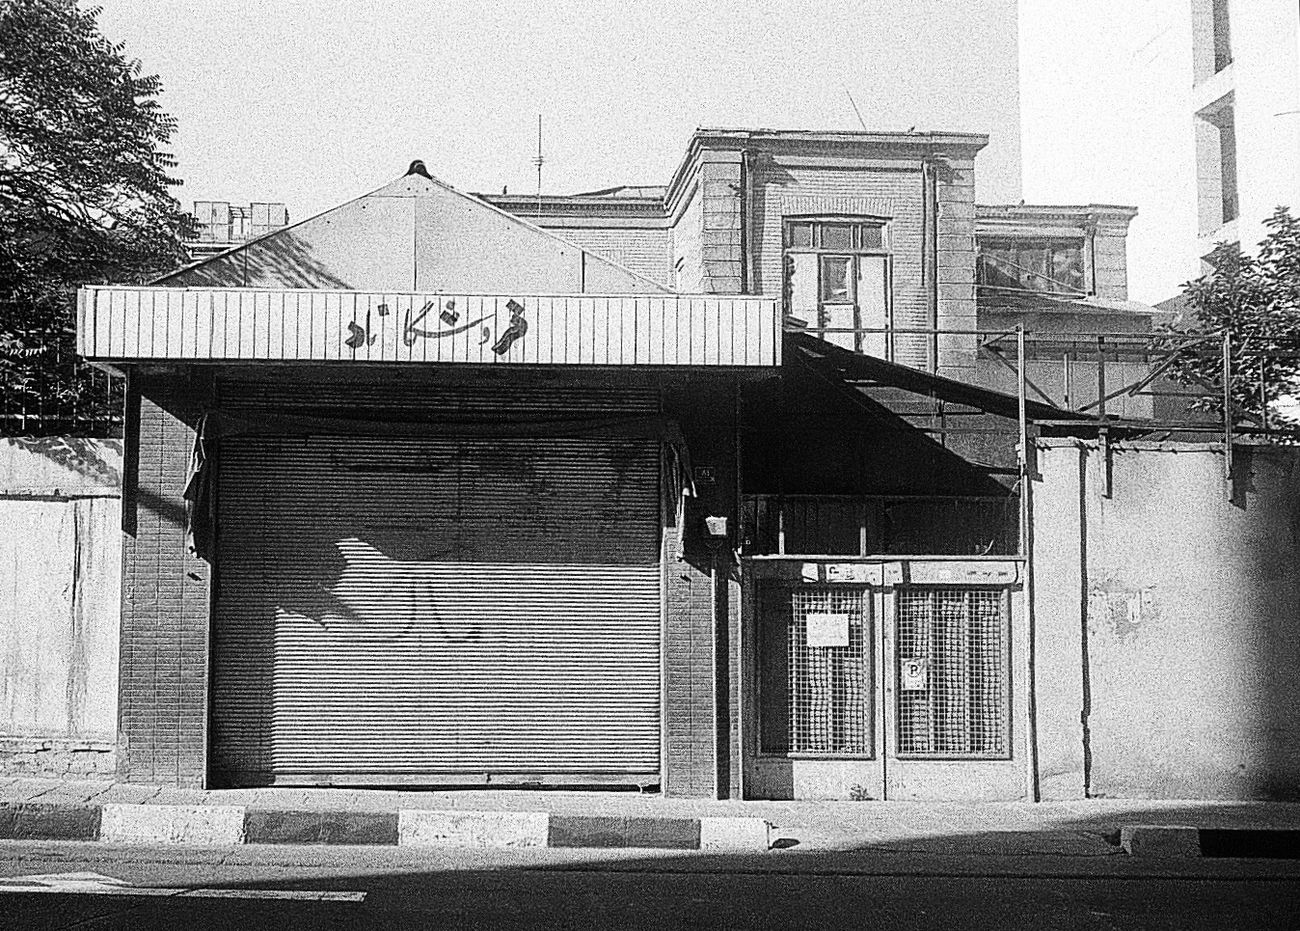 Architectural Details Old Shop Closed No People Old Architecture Urban Exploration Urban Architecture Streetphoto_bw Black And White 35mm Film Cityscape 🤦🏽‍♀️